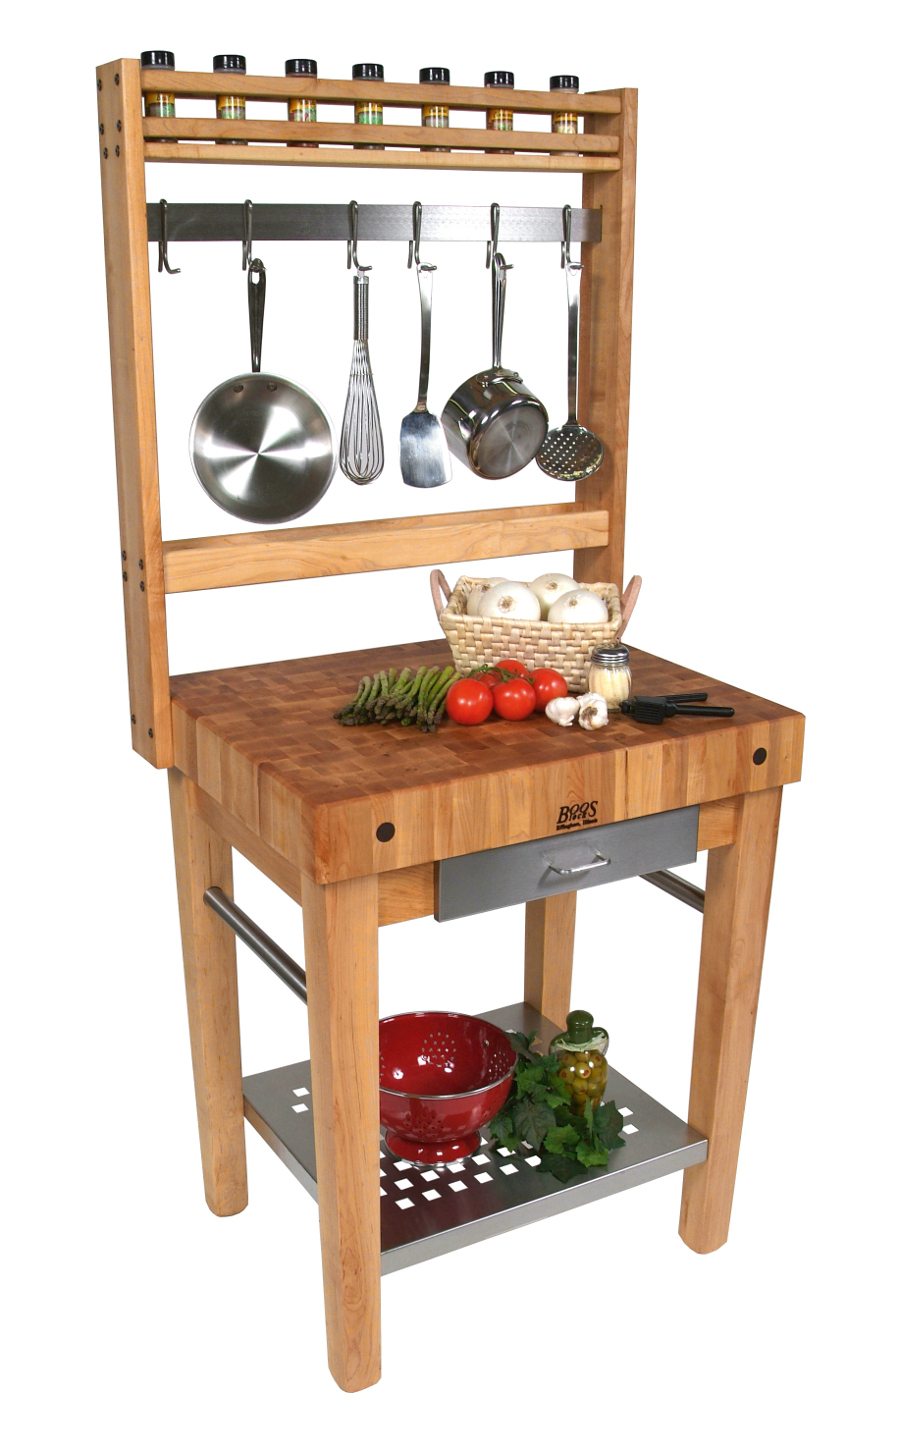 Boos Cucina Premo Kitchen Prep Station with Pot Rack - 30